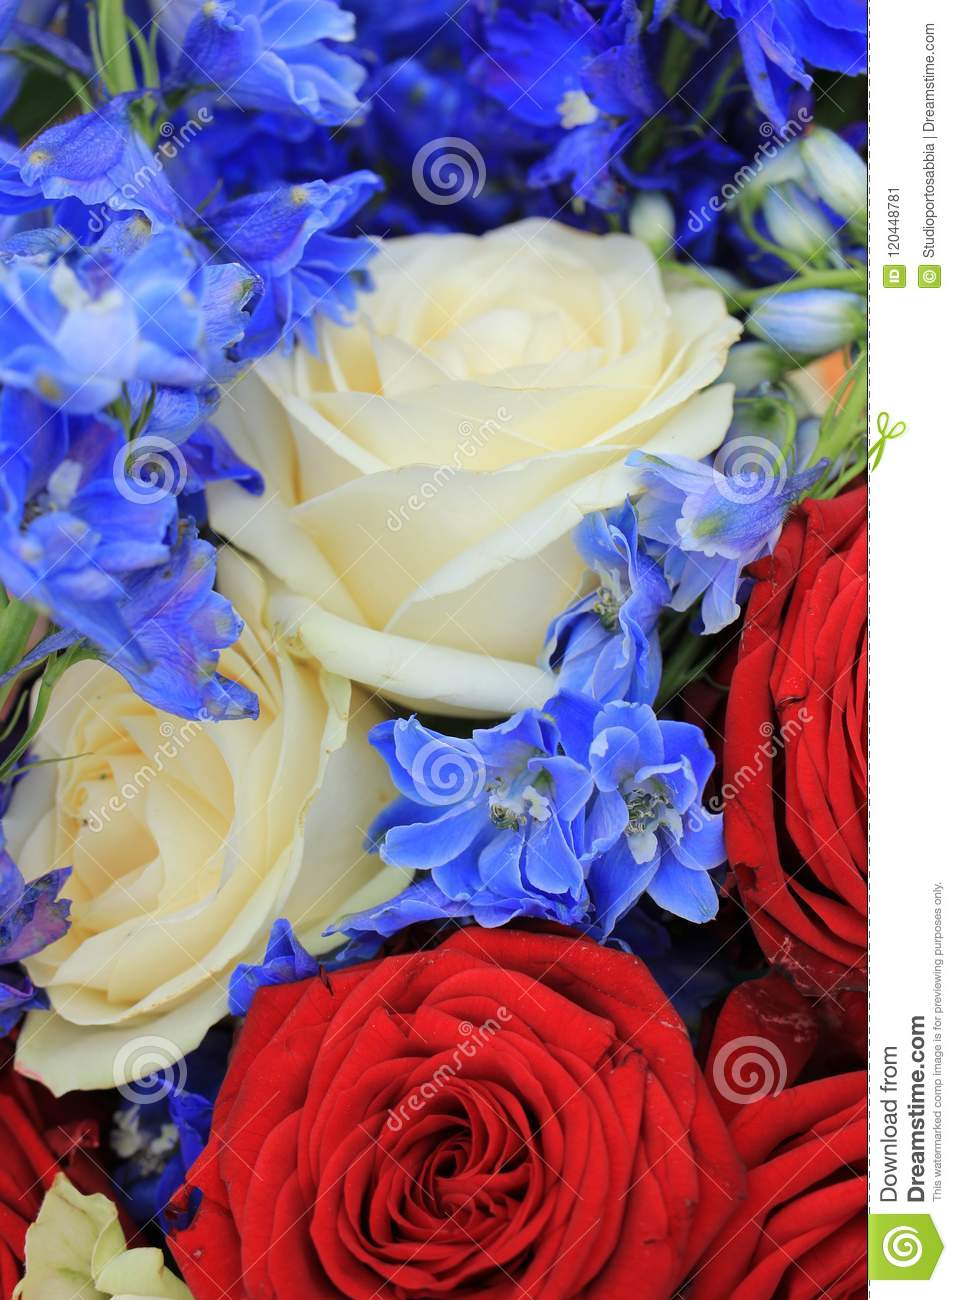 Red white and blue wedding flowers stock image image of rose download red white and blue wedding flowers stock image image of rose bouquet mightylinksfo